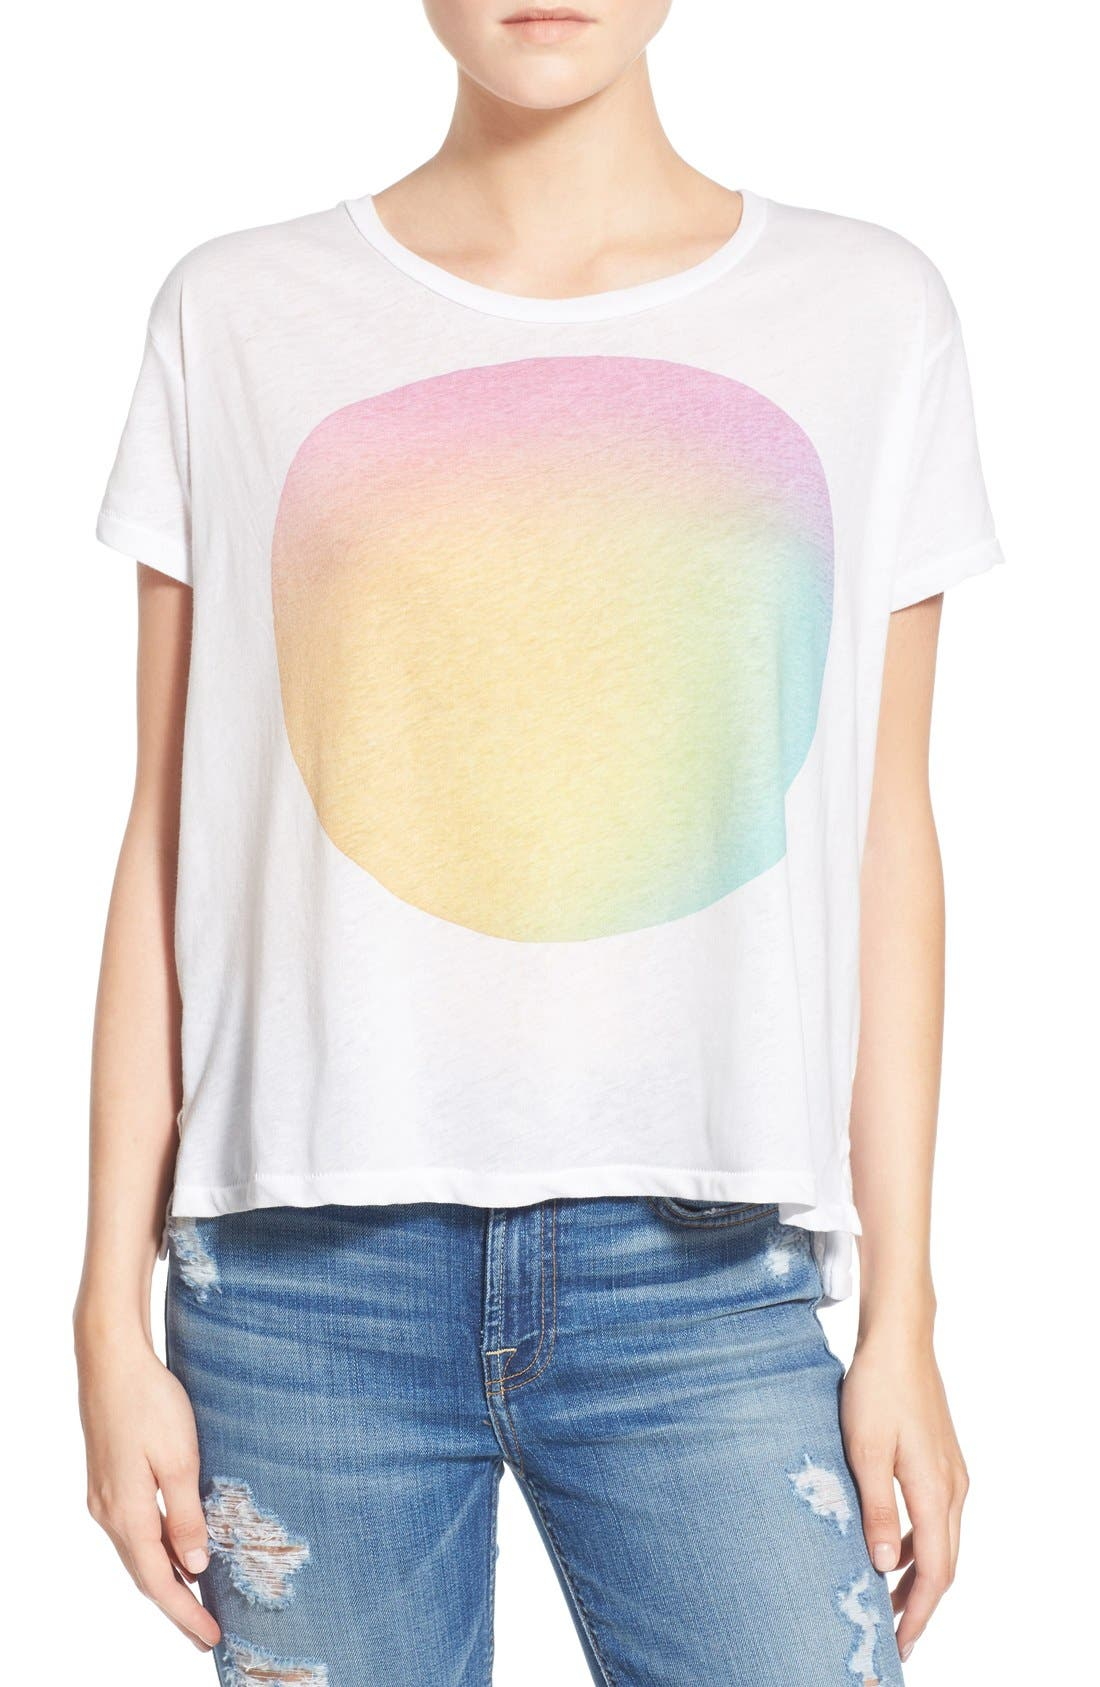 Alternate Image 1 Selected - Sundry 'Watercolor' Graphic Tee